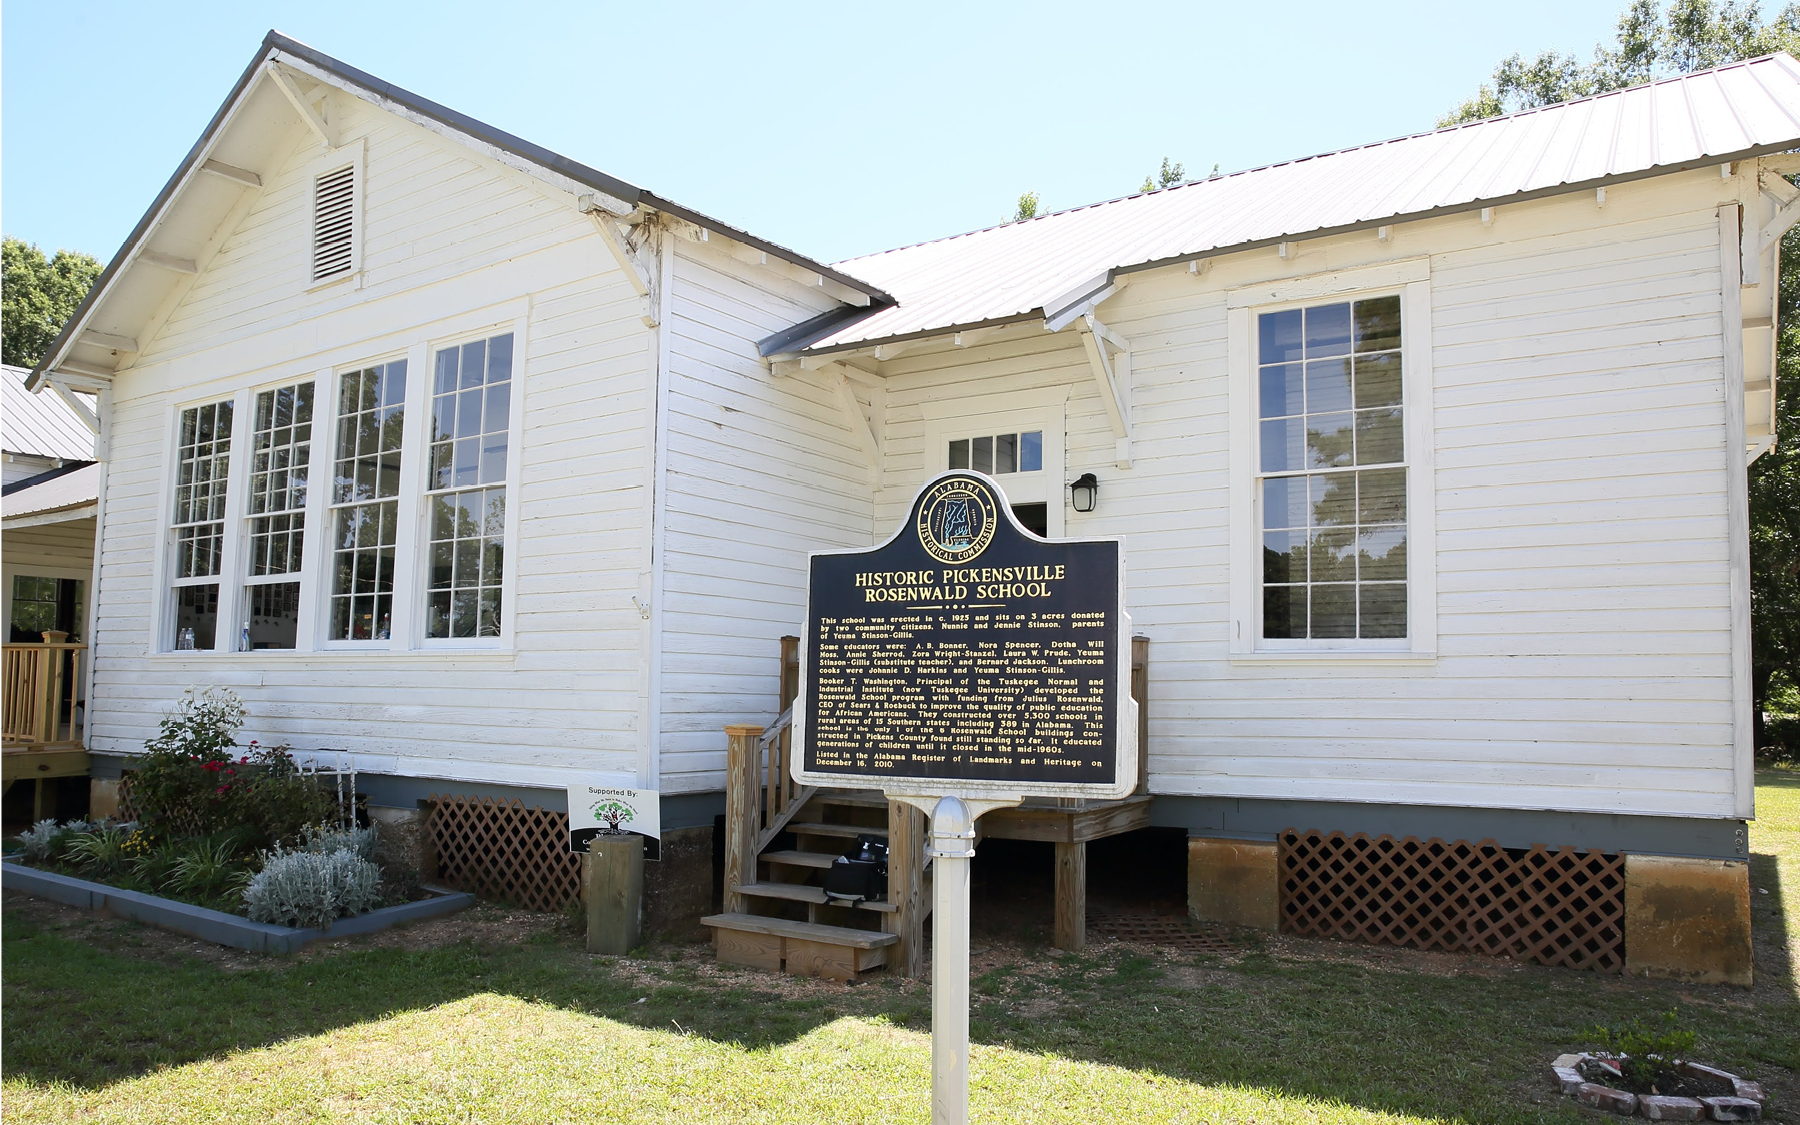 The Pickensville School in Pickens County, Alabama.